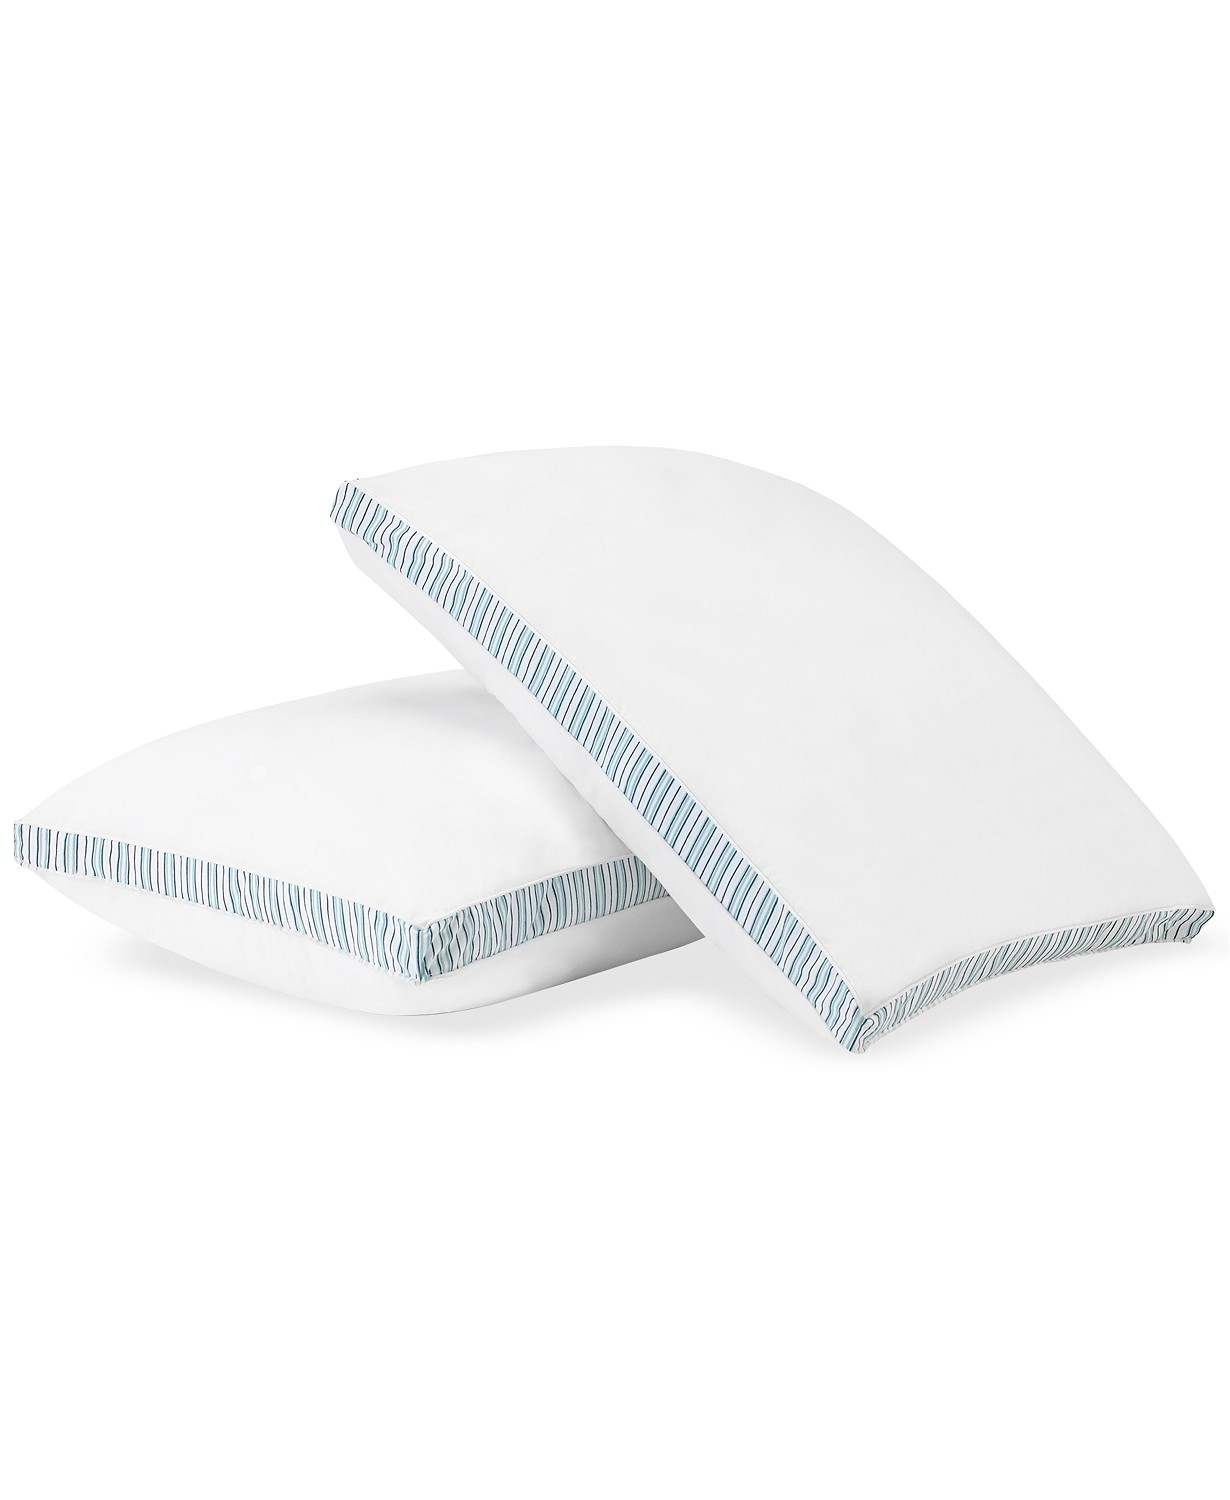 2-Pack Nautica Standard Gusset Pillows